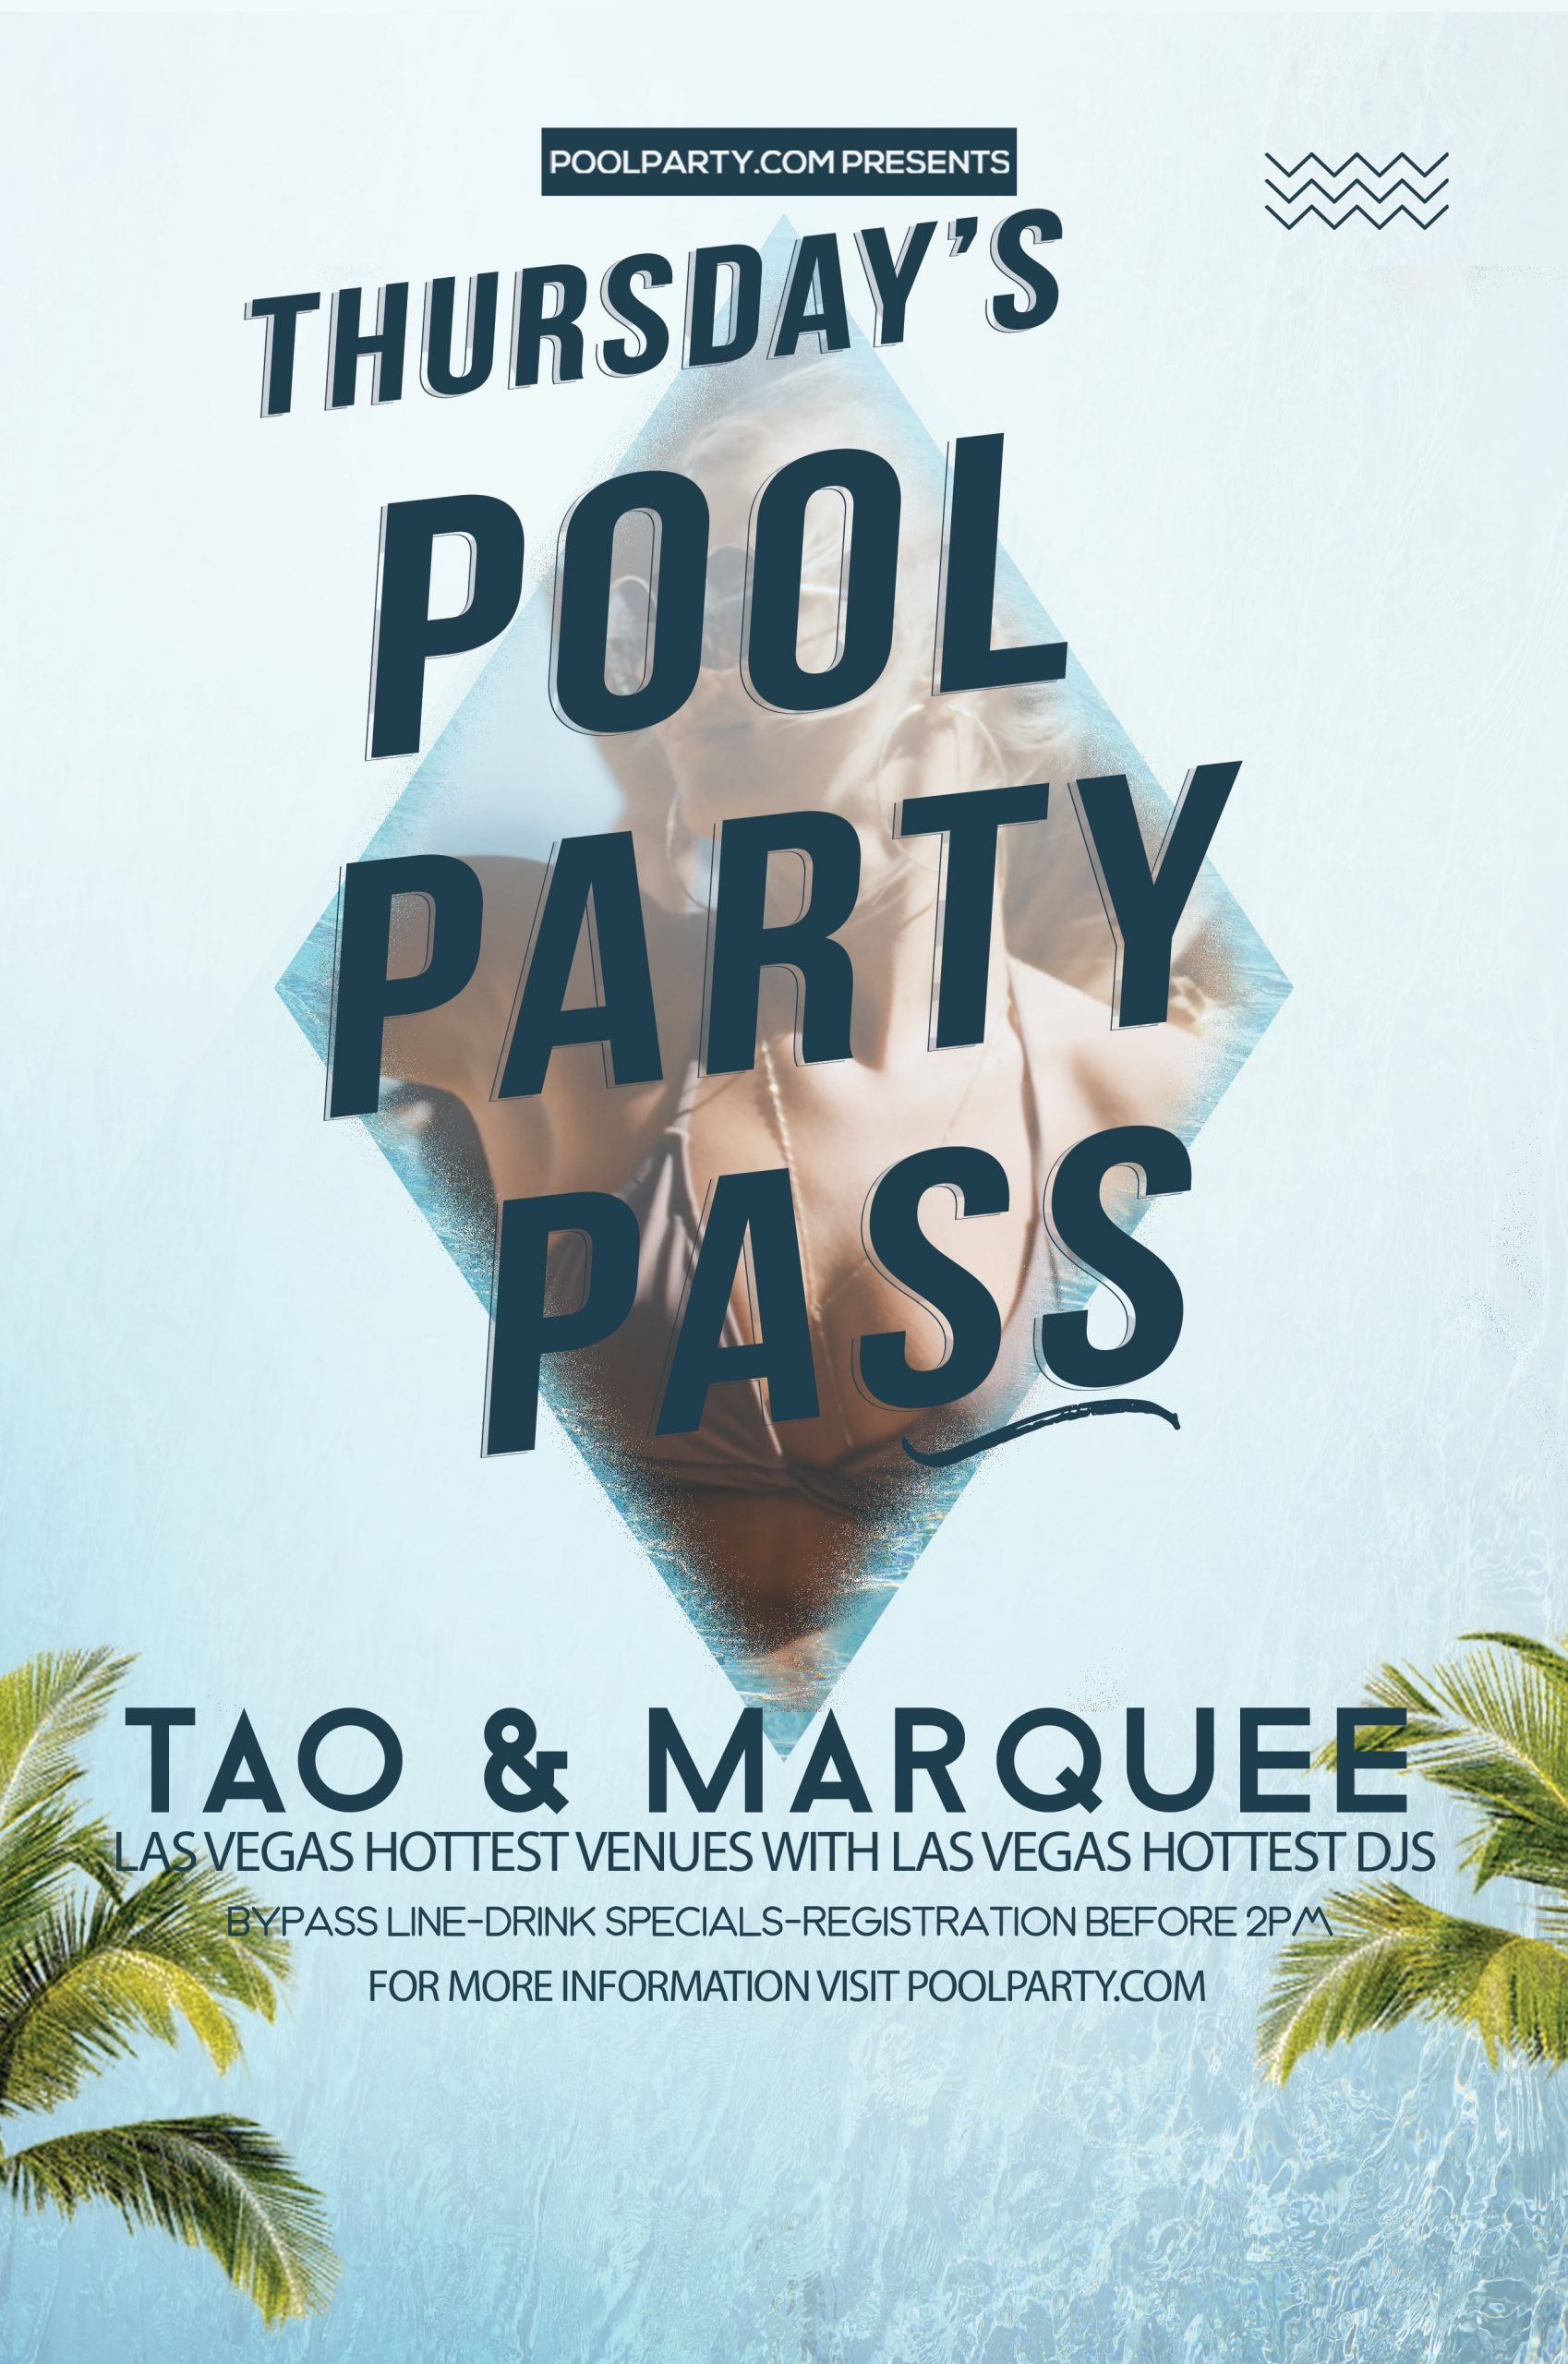 Thursday's Las Vegas Pool Party Pass (July 9th 2020), Vegas Tao & Marquee VIP Passes